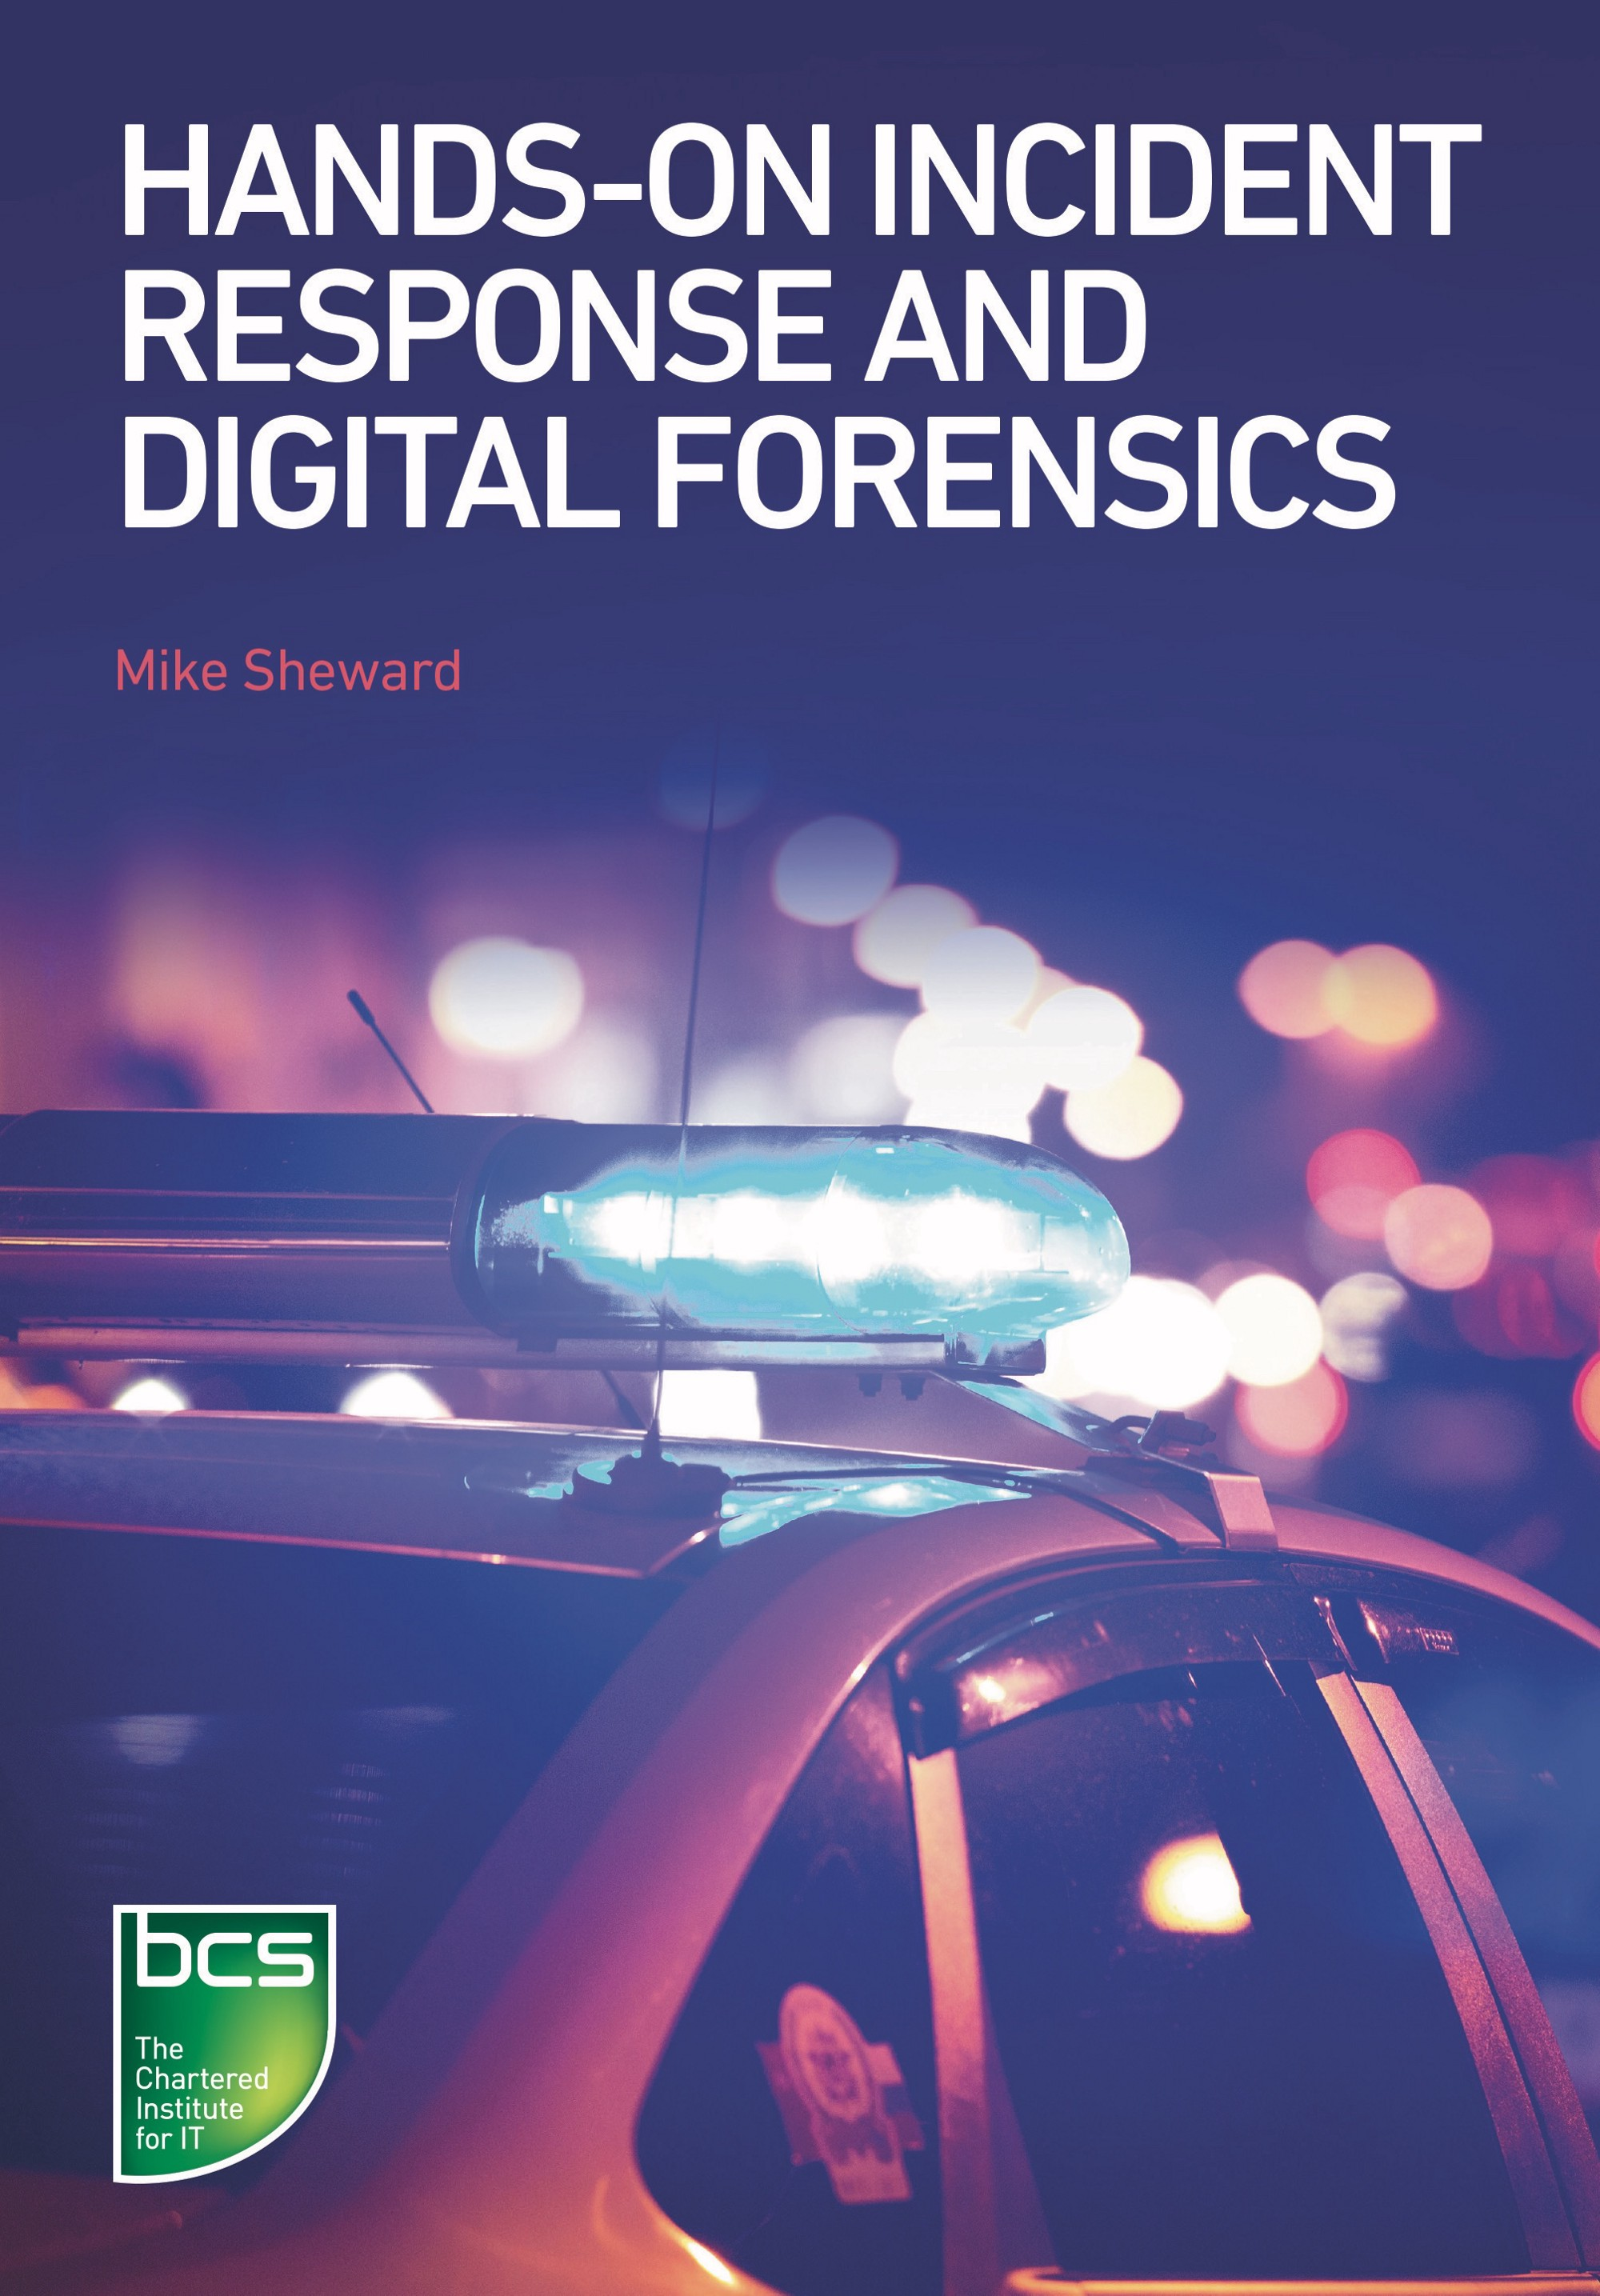 medium.com - Mike Sheward - Out now: Hands-on Incident Response and Digital Forensics!